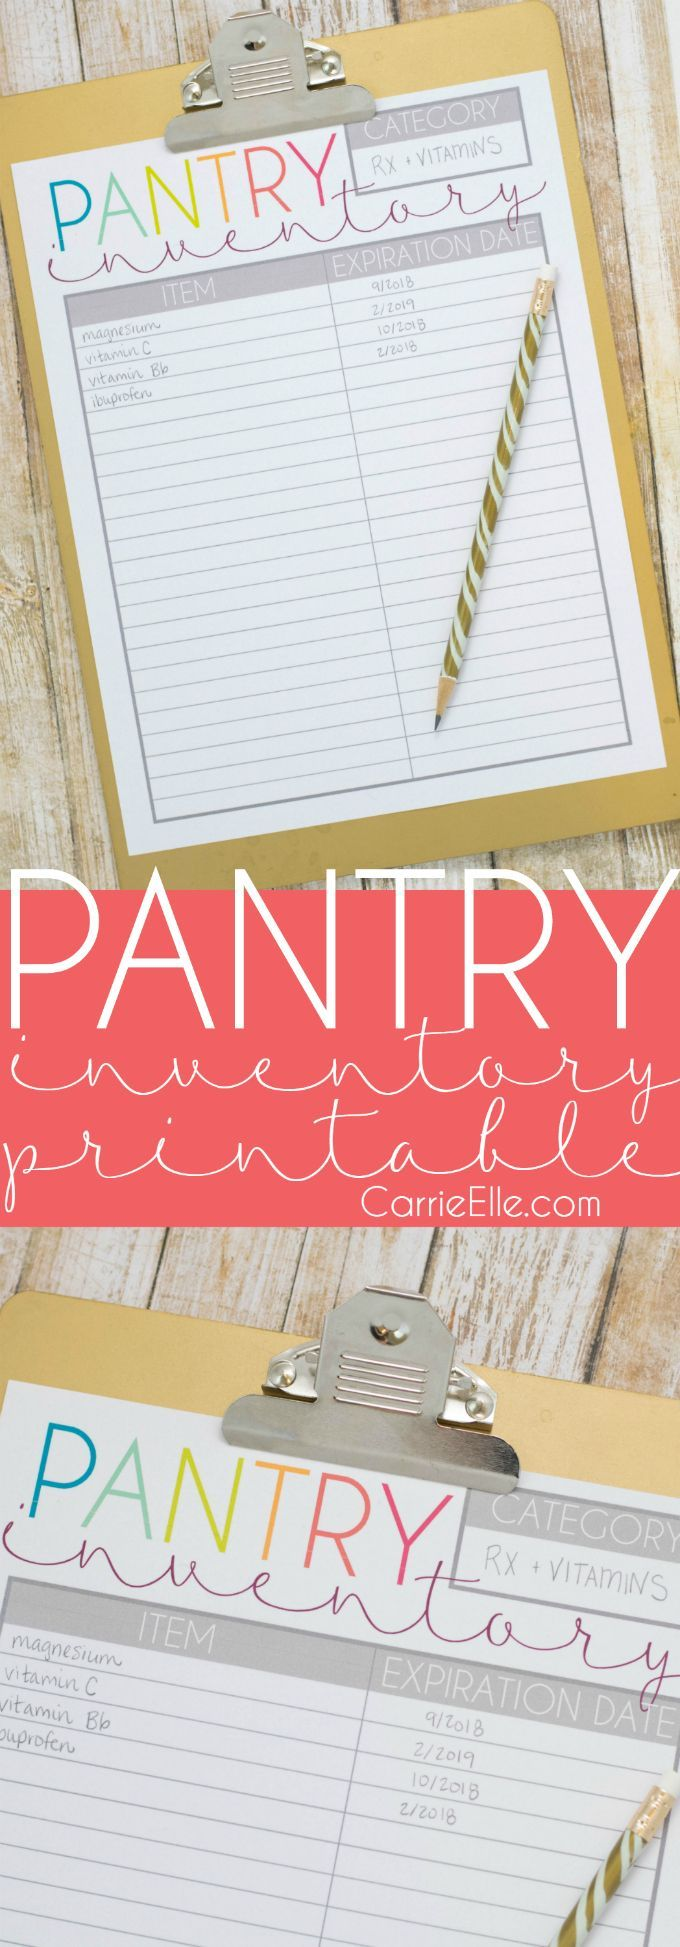 printable pantry inventory list